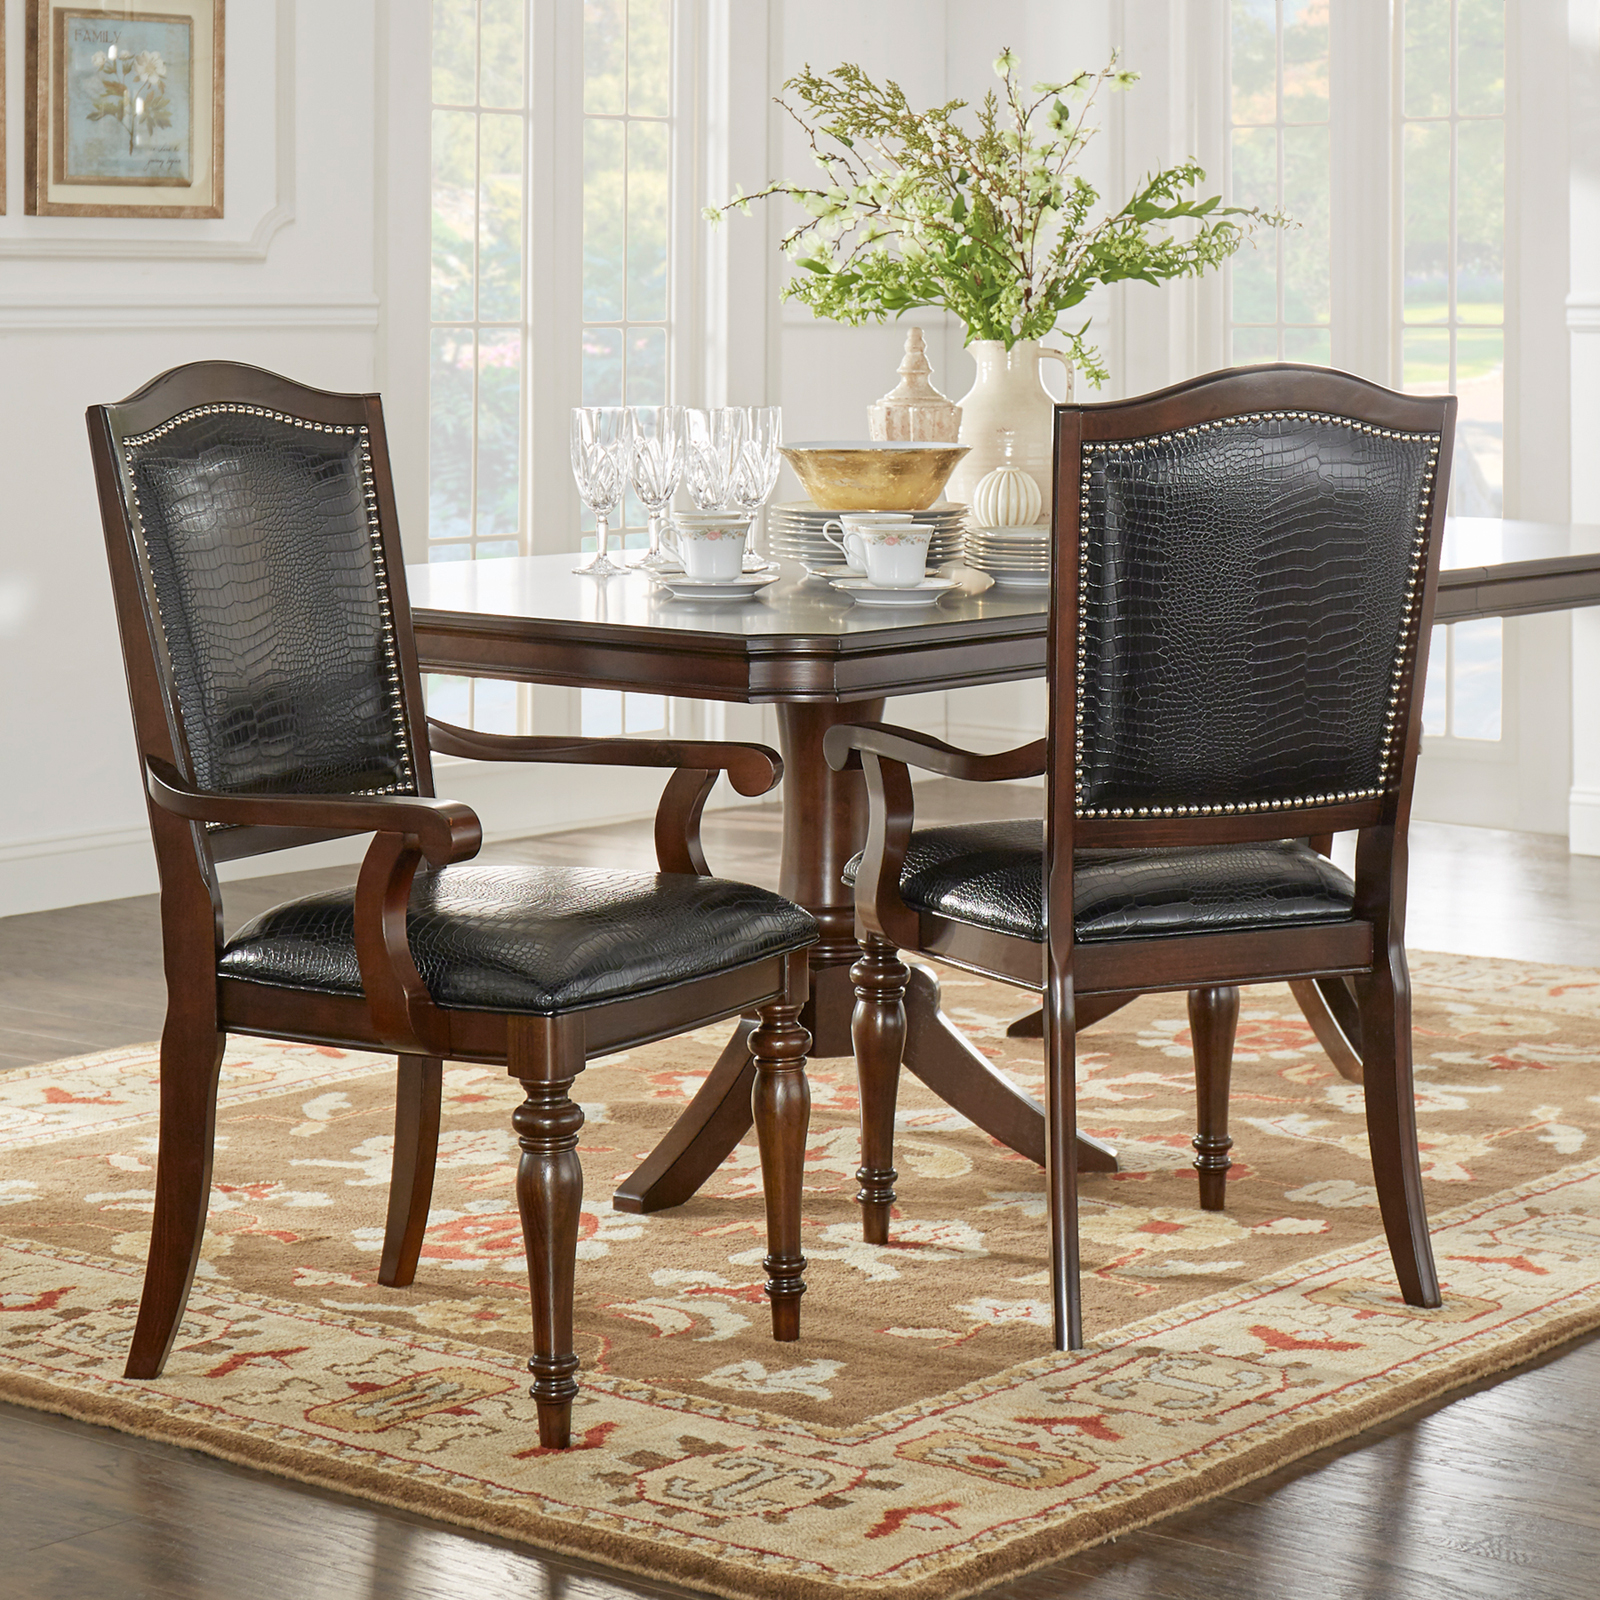 Weston Home Marston Alligator Faux Leather Nailhead Dining Side Chair   Set  Of 2 | Hayneedle